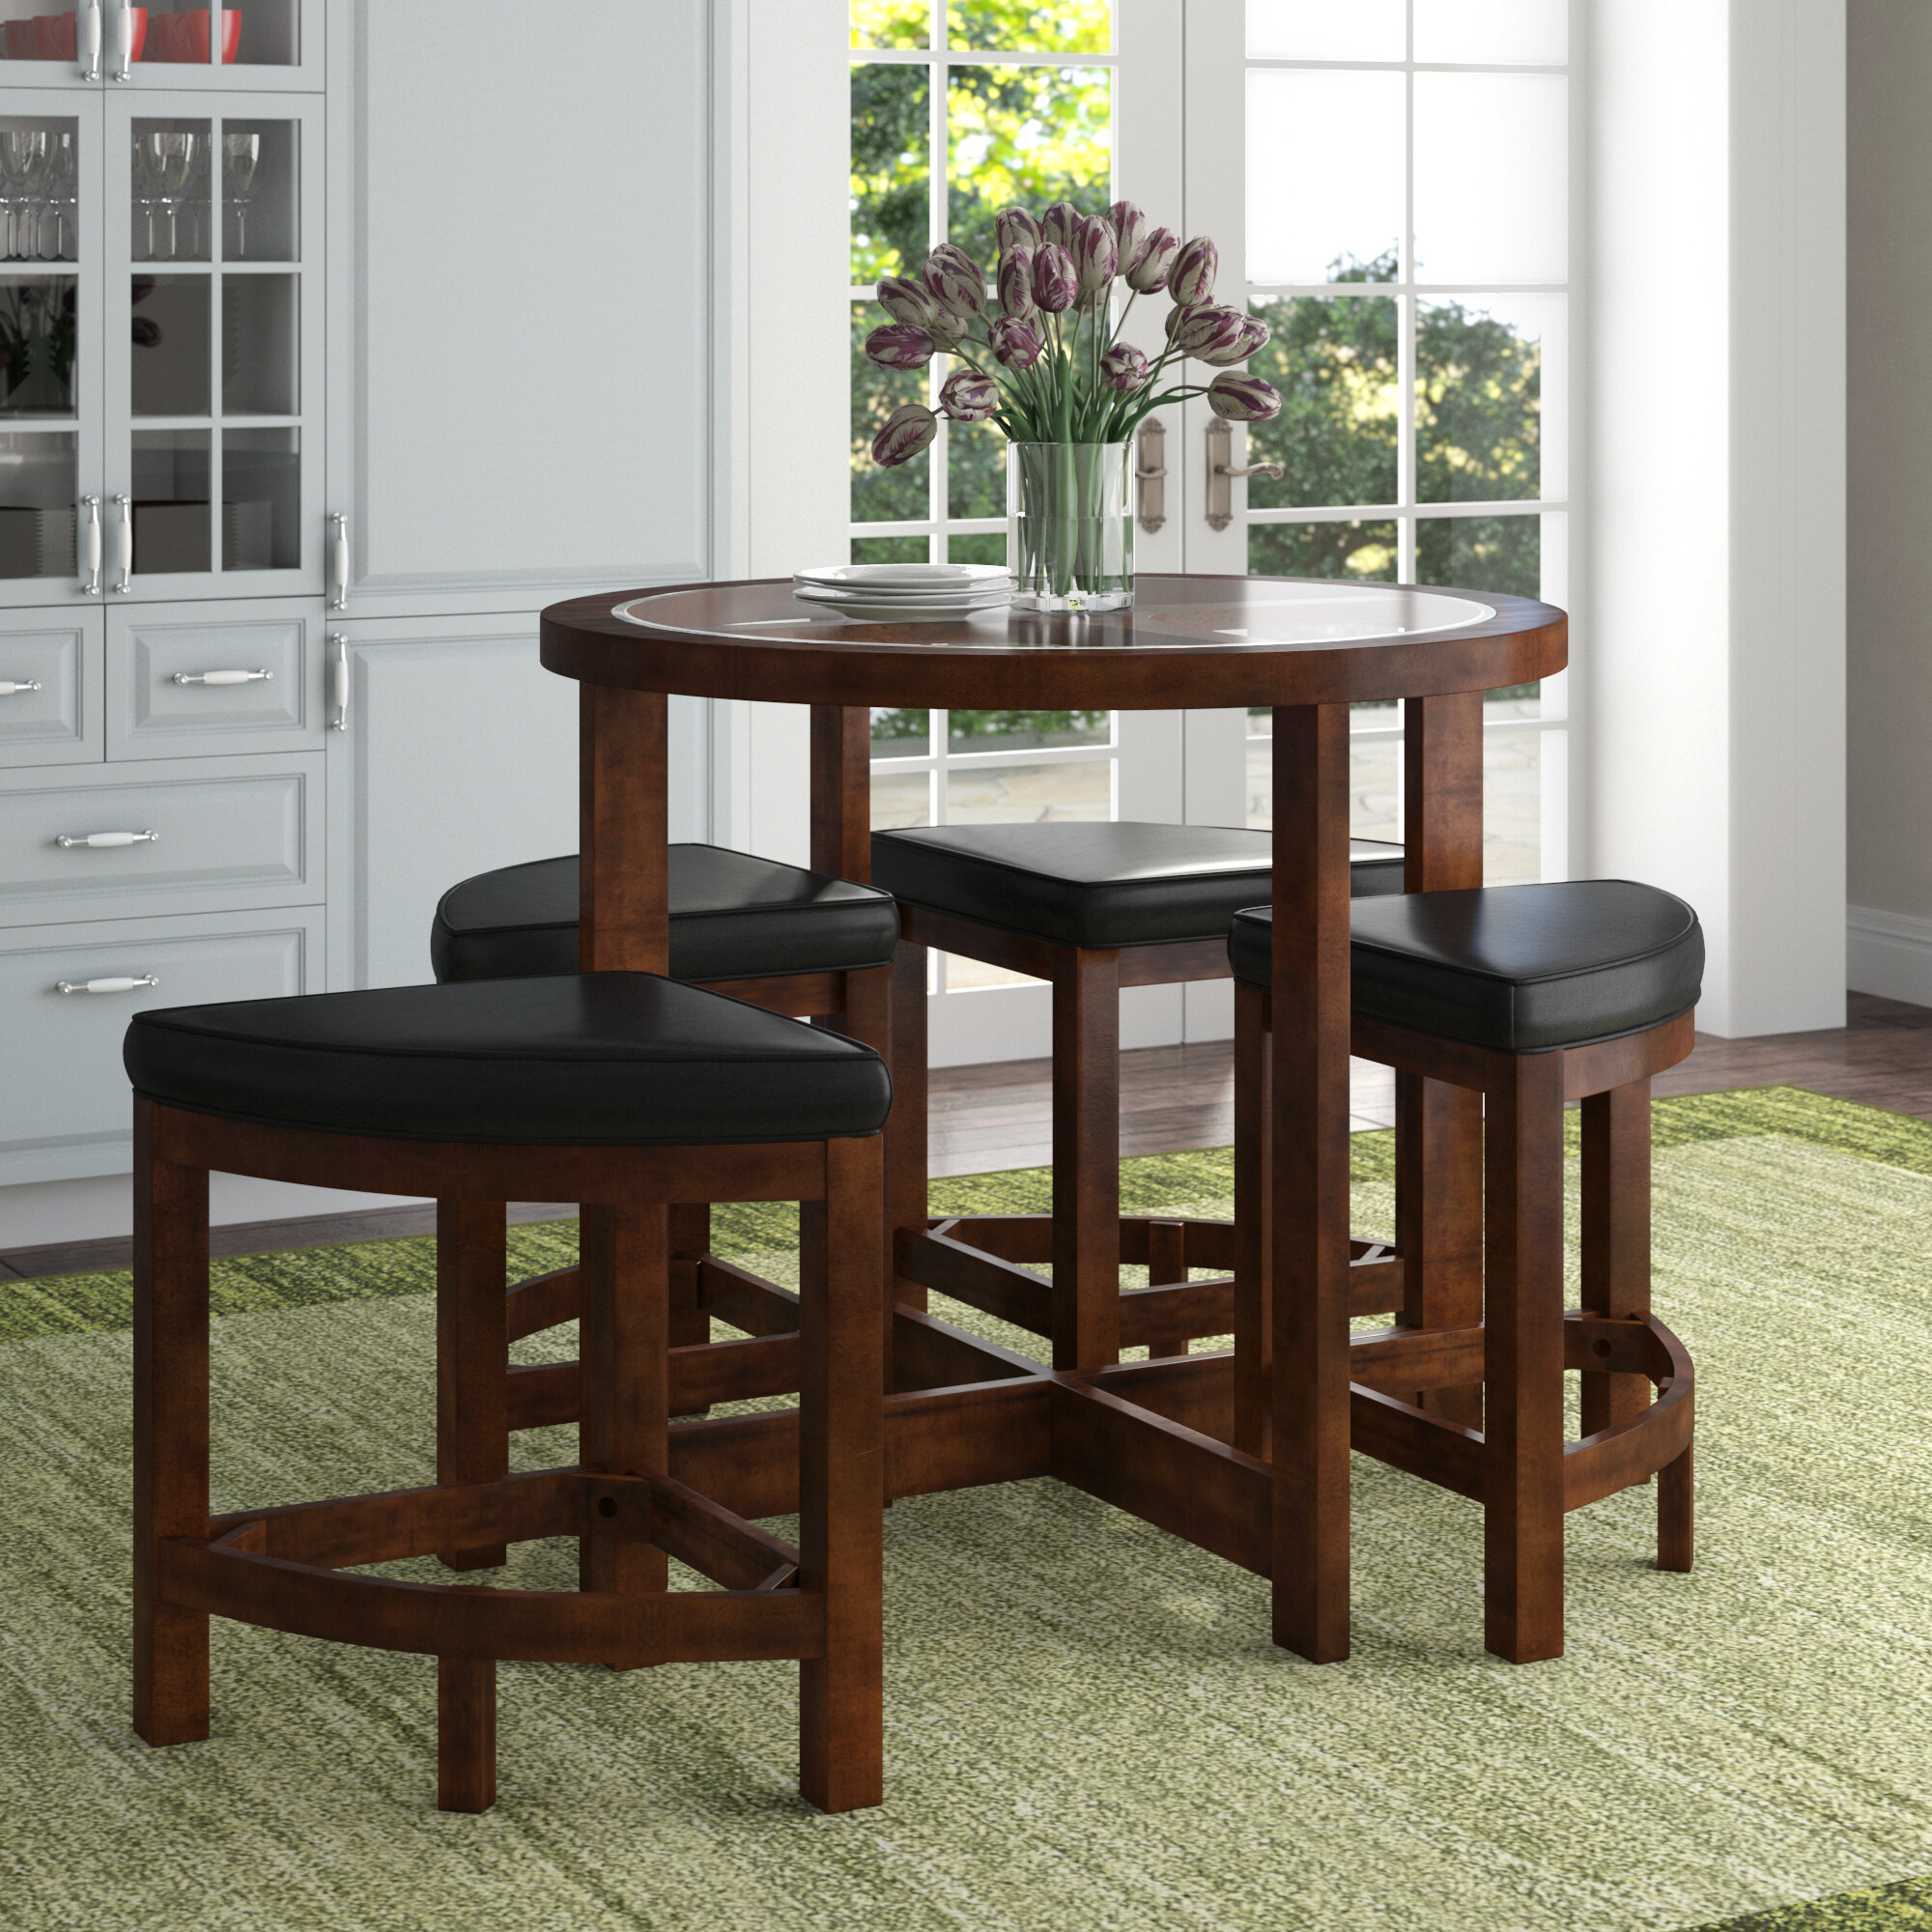 Red Barrel Studio Jinie 5 Piece Pub Table Set Reviews Wayfair